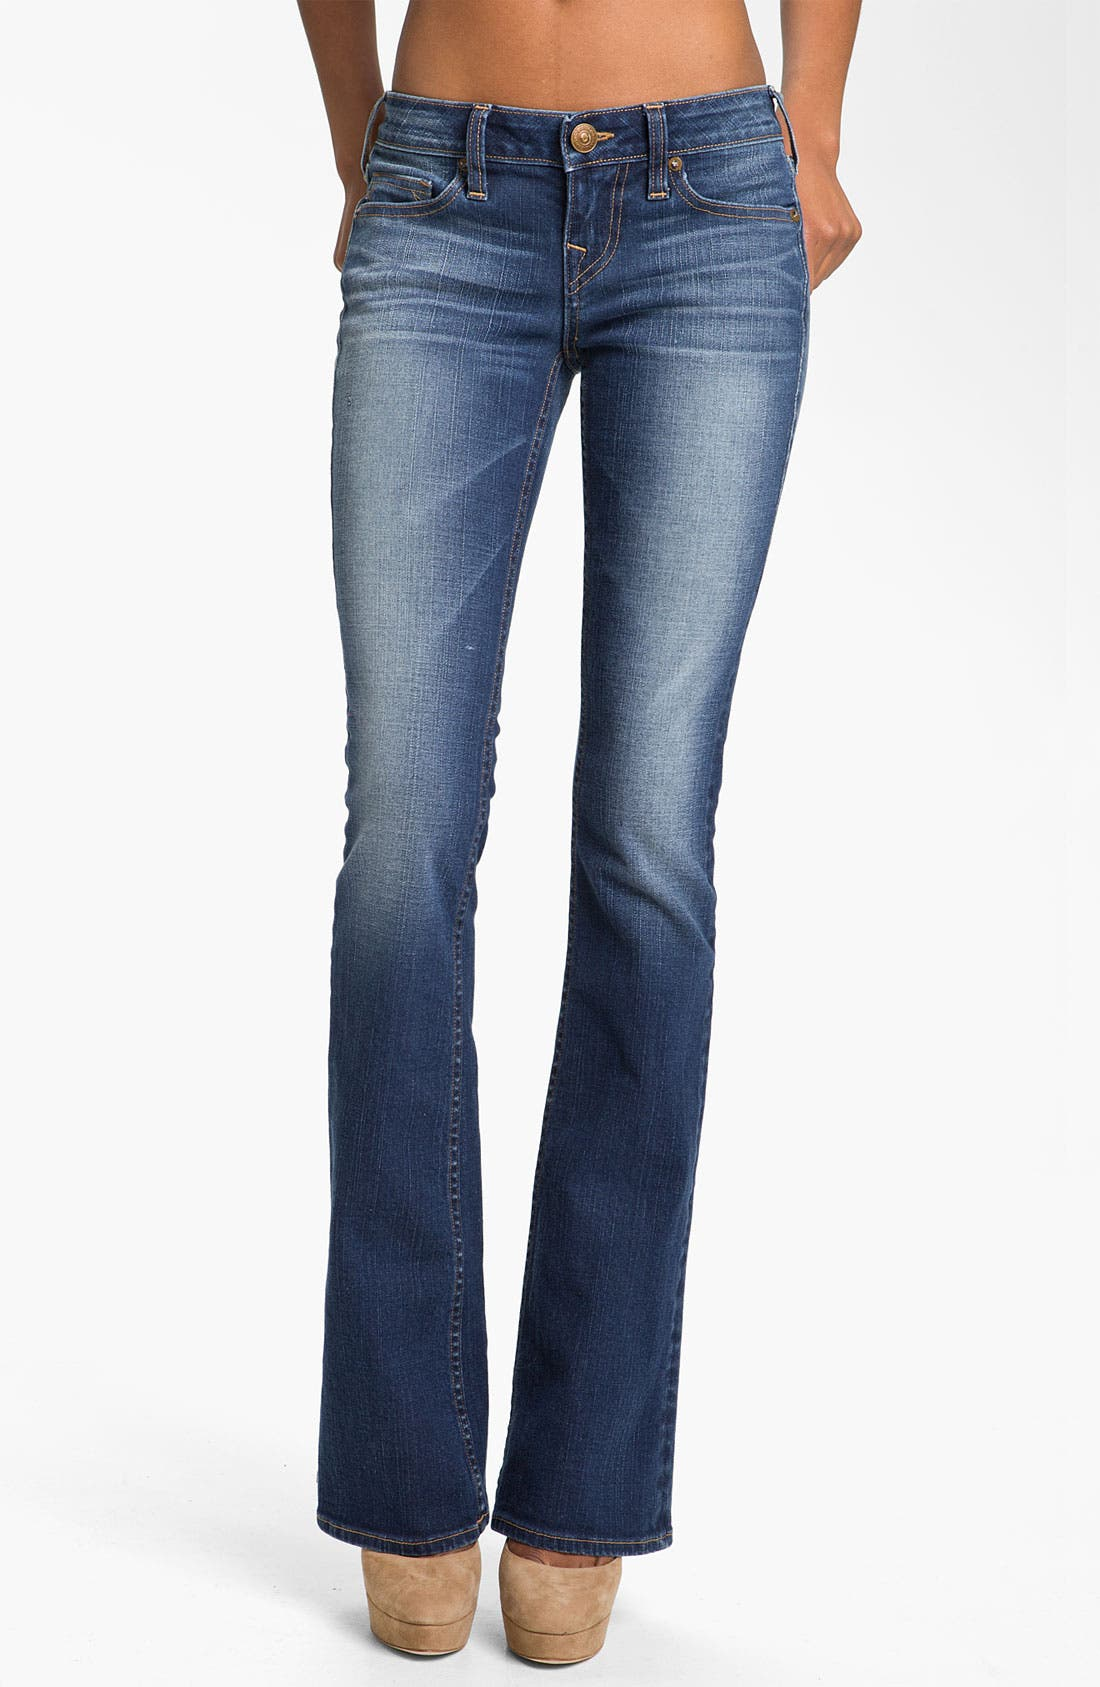 Alternate Image 1 Selected - True Religion Brand Jeans 'Bobby' Bootcut Jeans (Del Mar Medium)